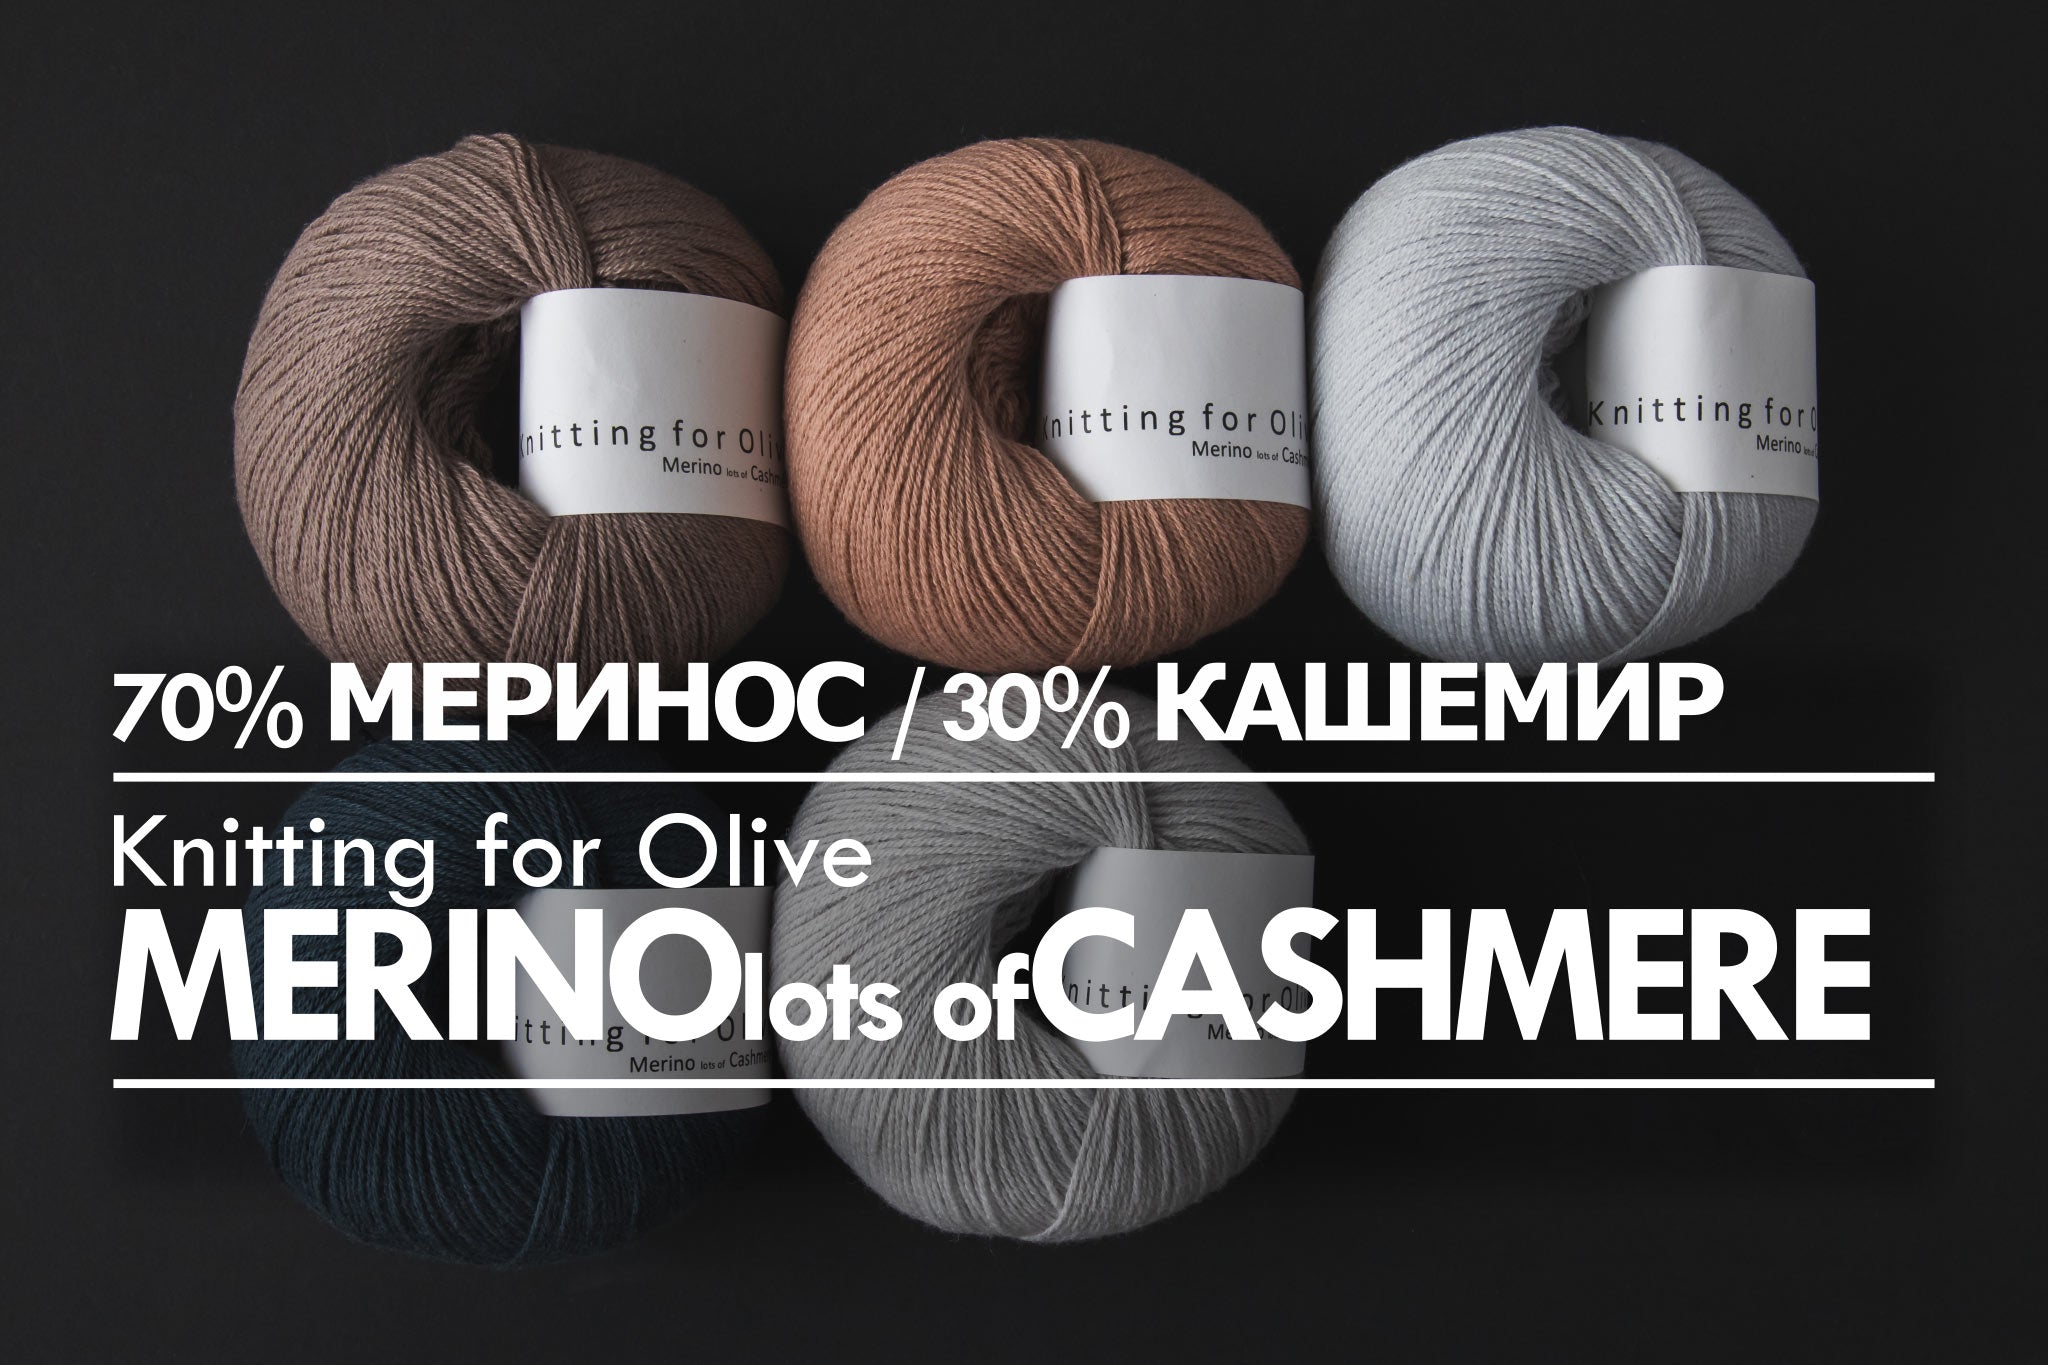 Merino lots of Cashmere